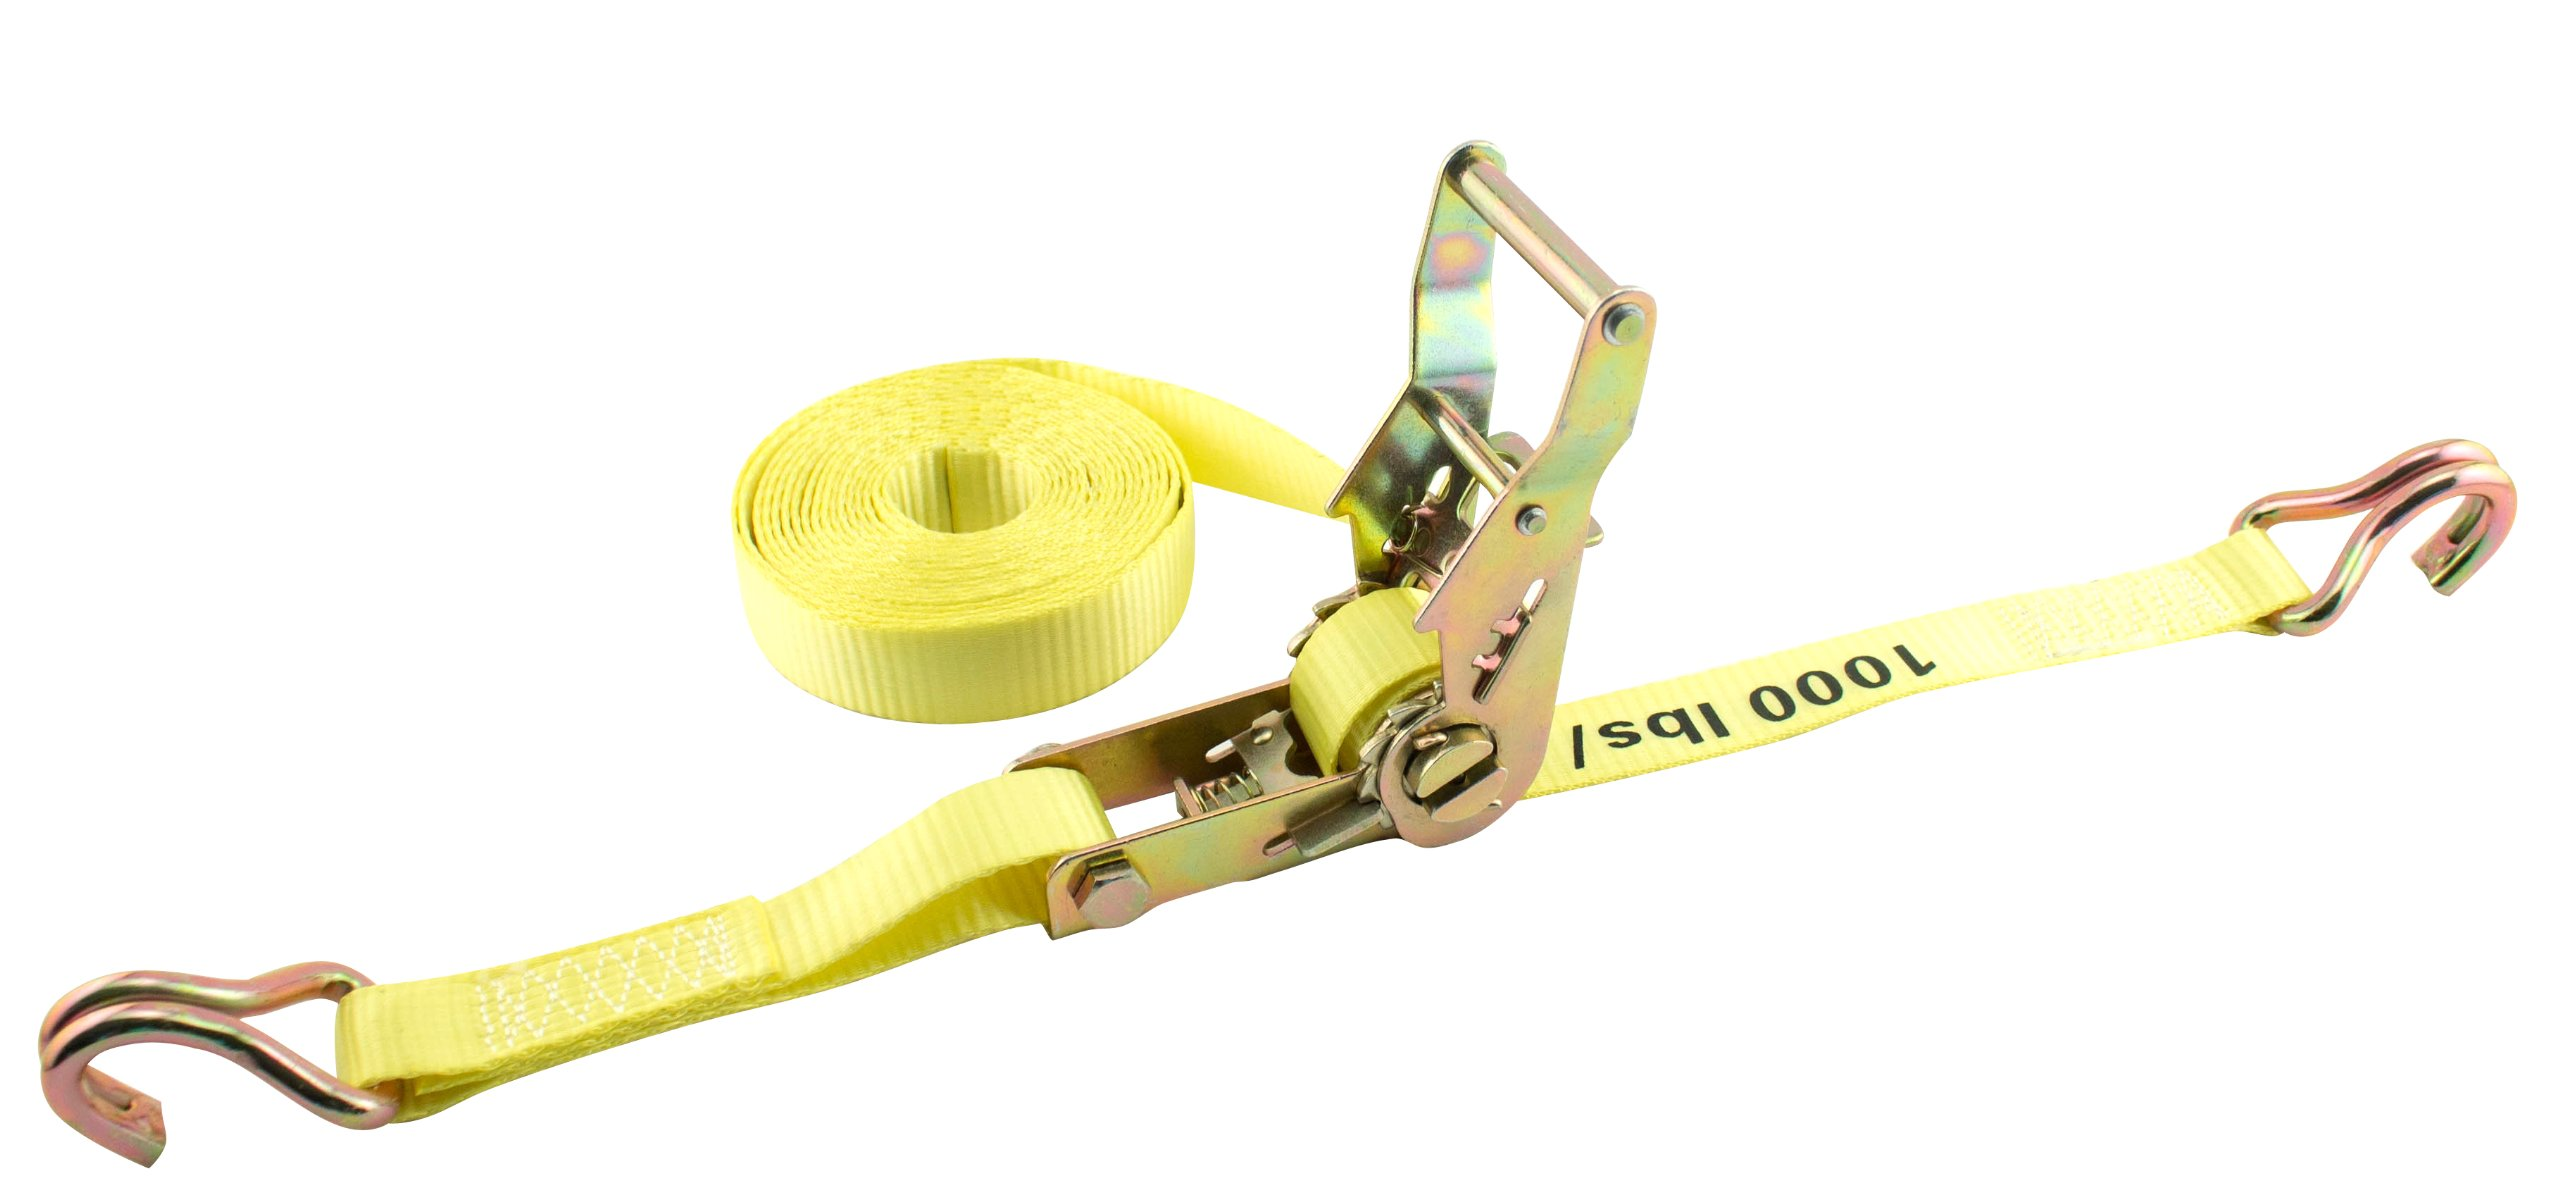 Erickson 01326 Yellow 1'' x 25' Medium Duty Ratcheting Tie-Down Strap, 3000 lb Load Capacity by Erickson